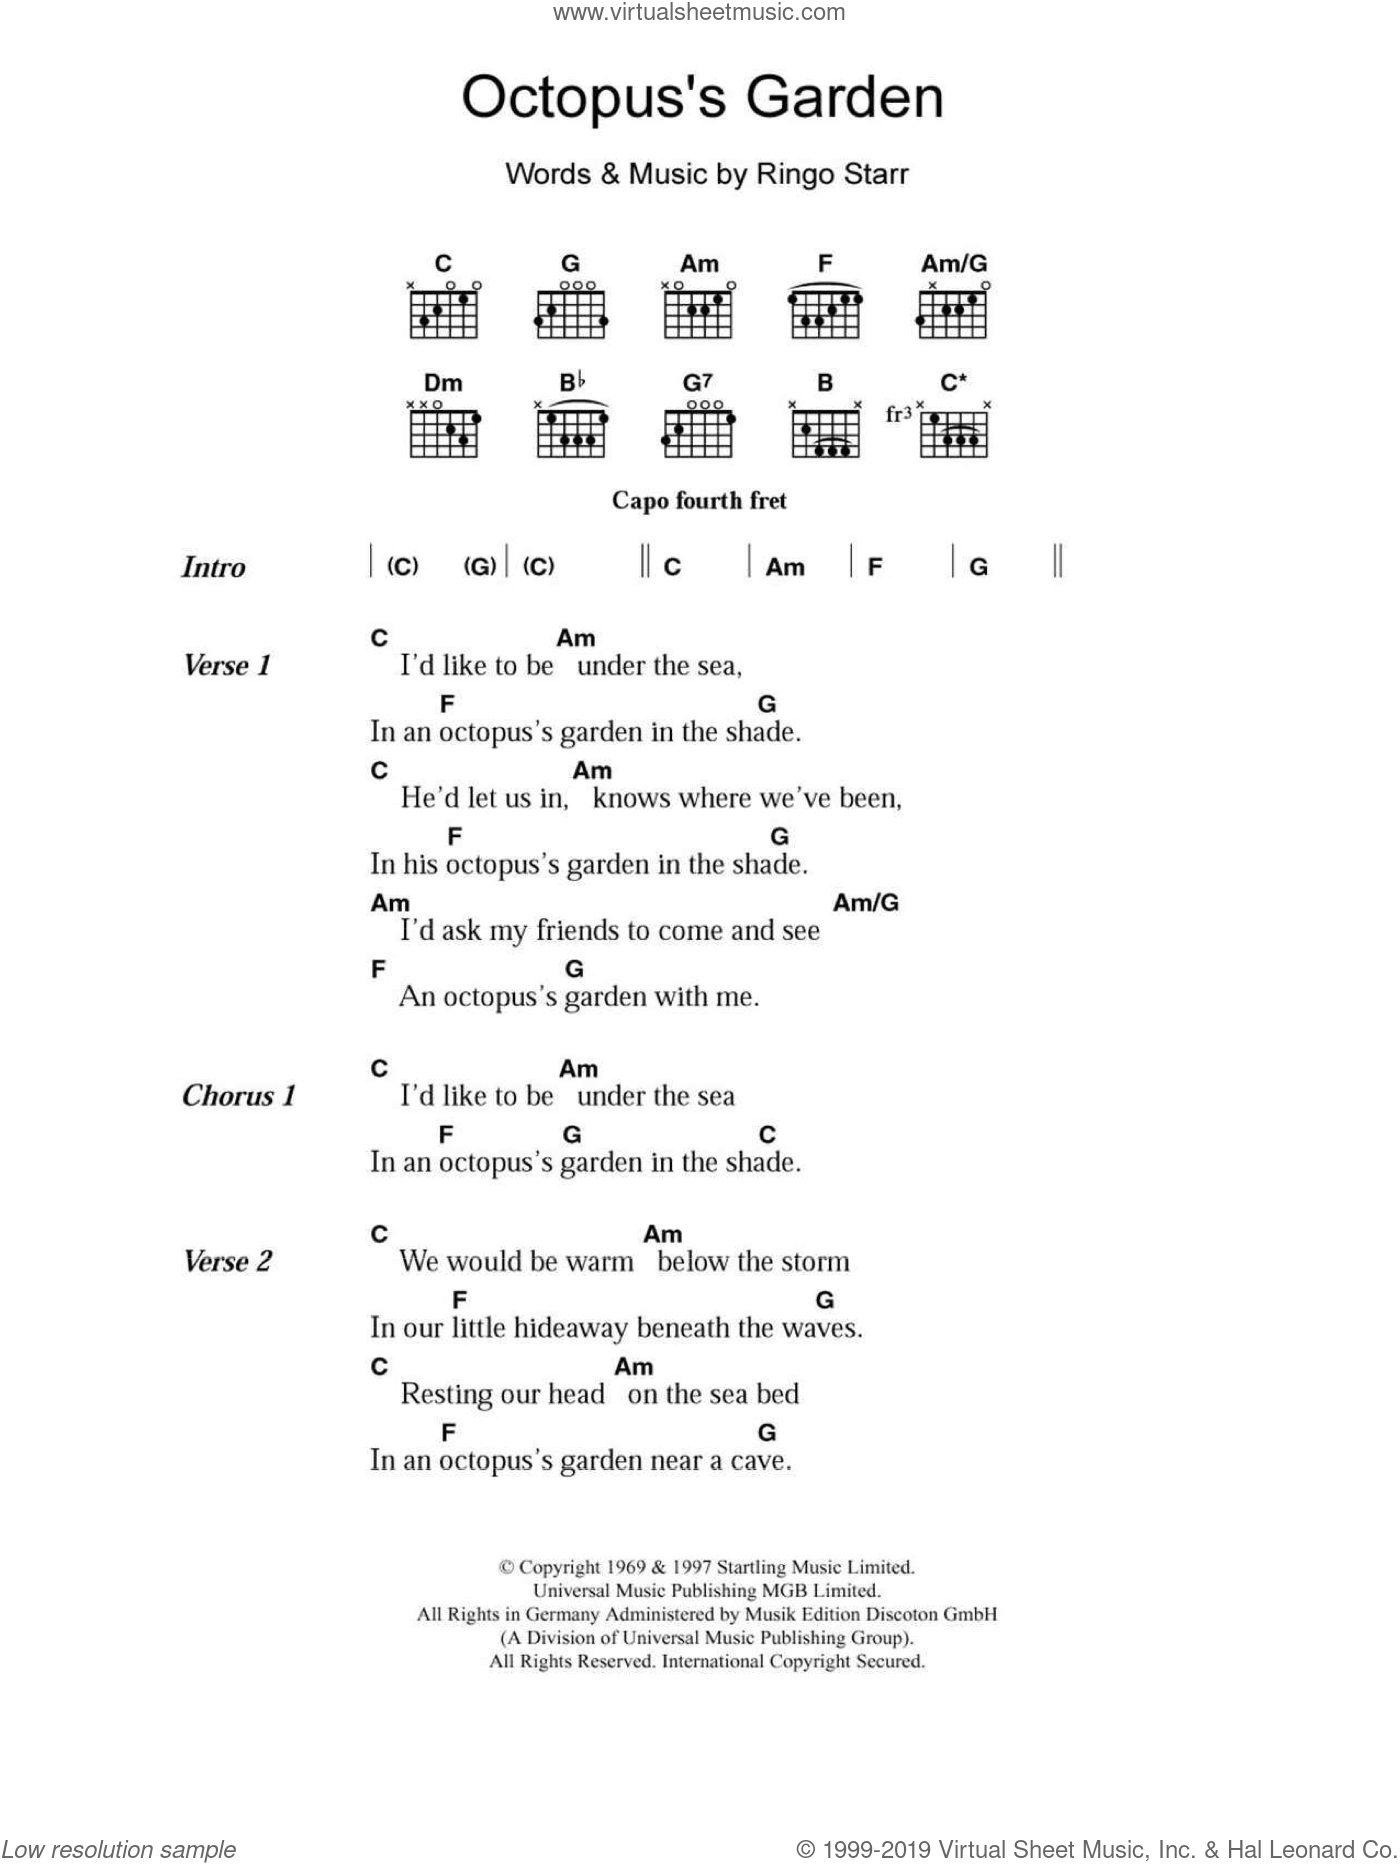 Octopus's Garden sheet music for guitar (chords) by The Beatles and Ringo Starr, intermediate skill level